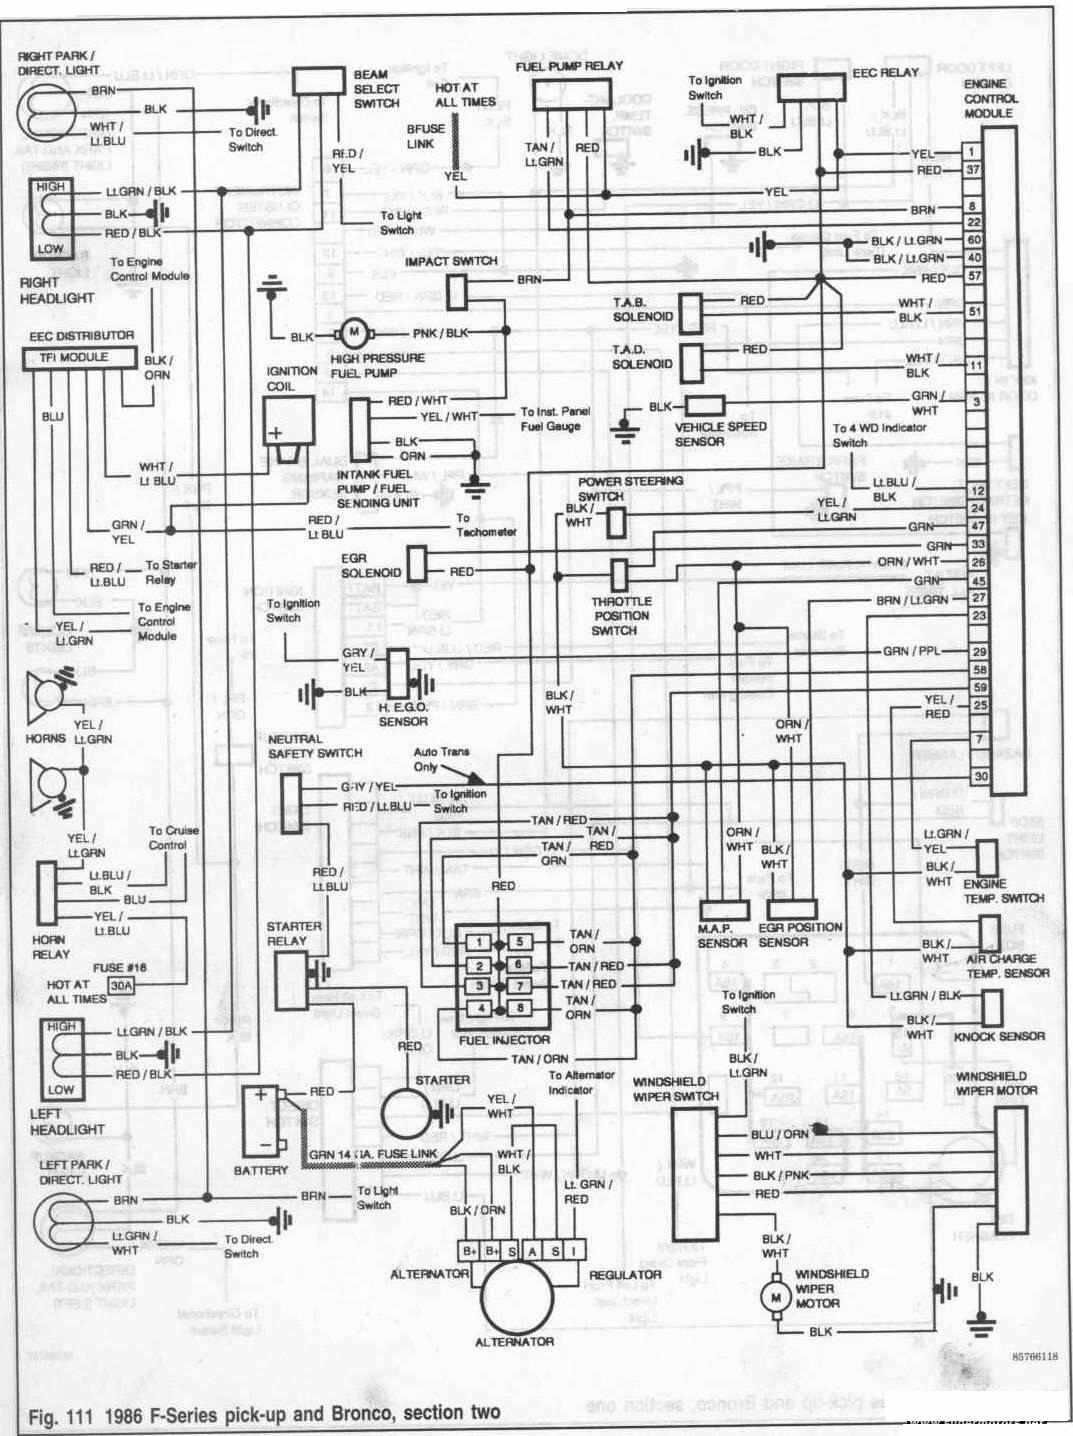 ford probe wiring diagram ford probe stereo wiring diagram images rh hendev tripa co 1986 ford bronco stereo wiring diagram 1986 ford bronco stereo wiring diagram